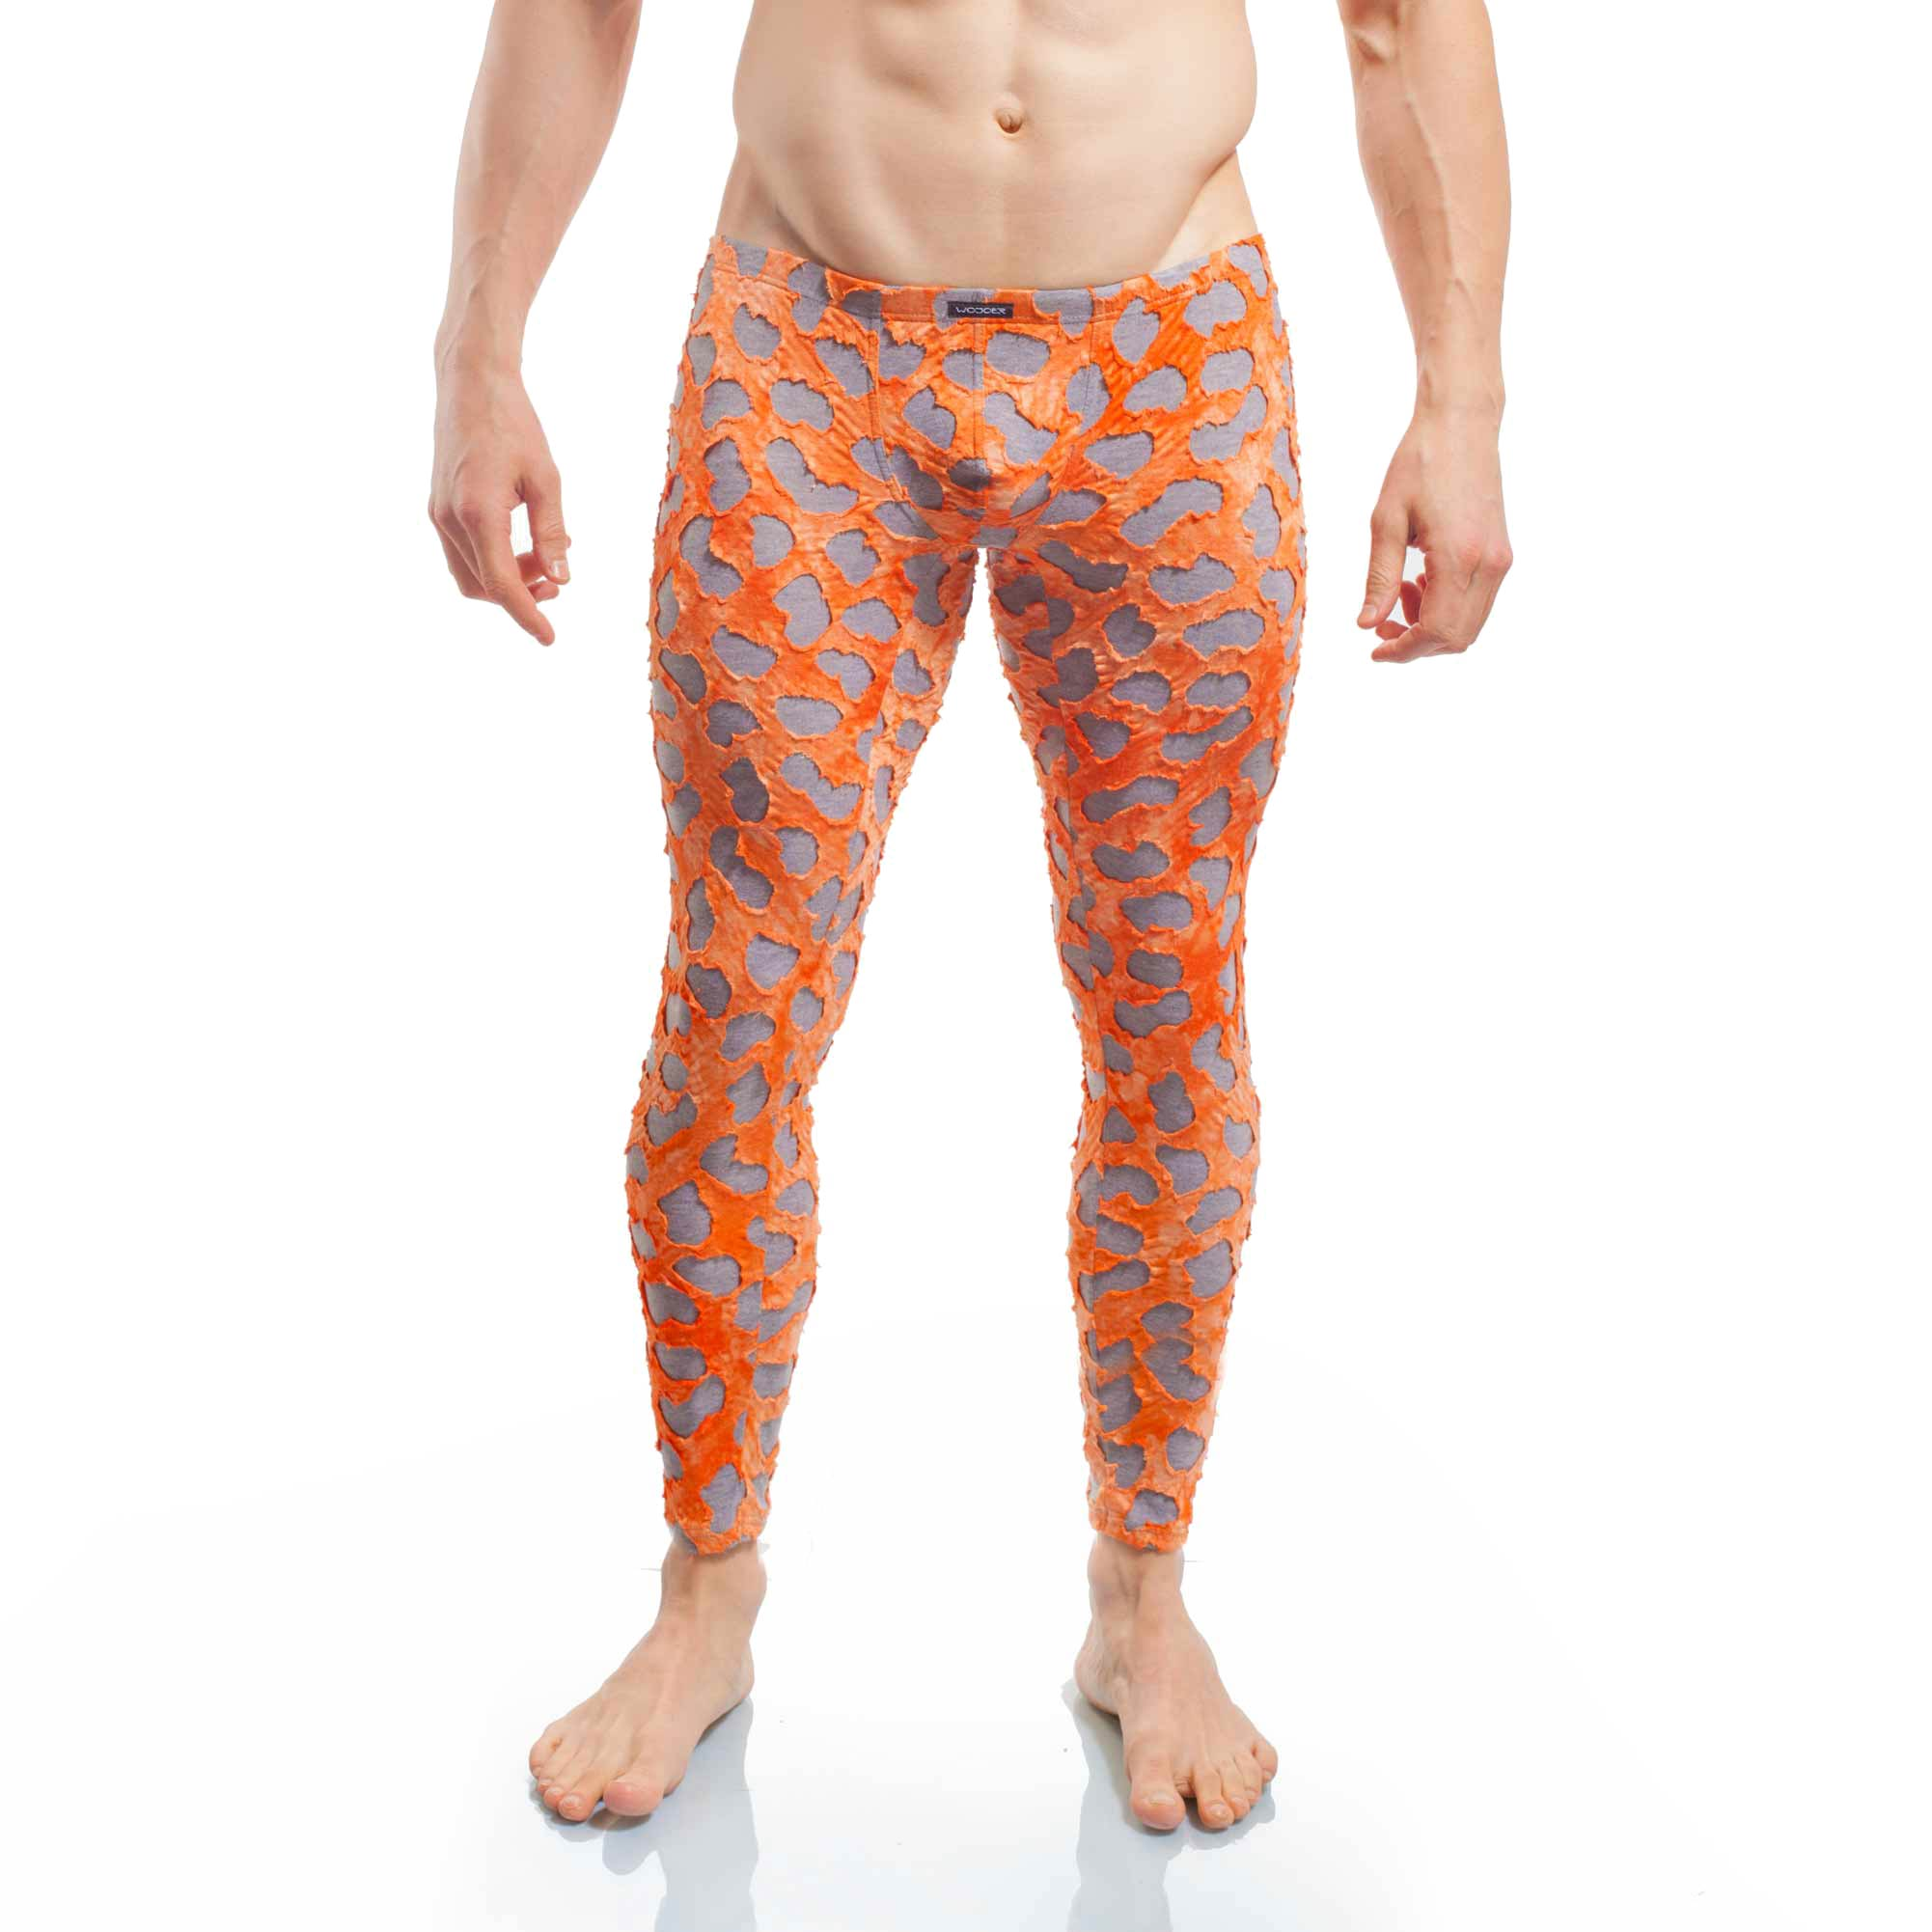 punk leggings, tear up, orange grau, baumwolle, viskose, warm, weich leggings, longjohns, unterhose Wojoer